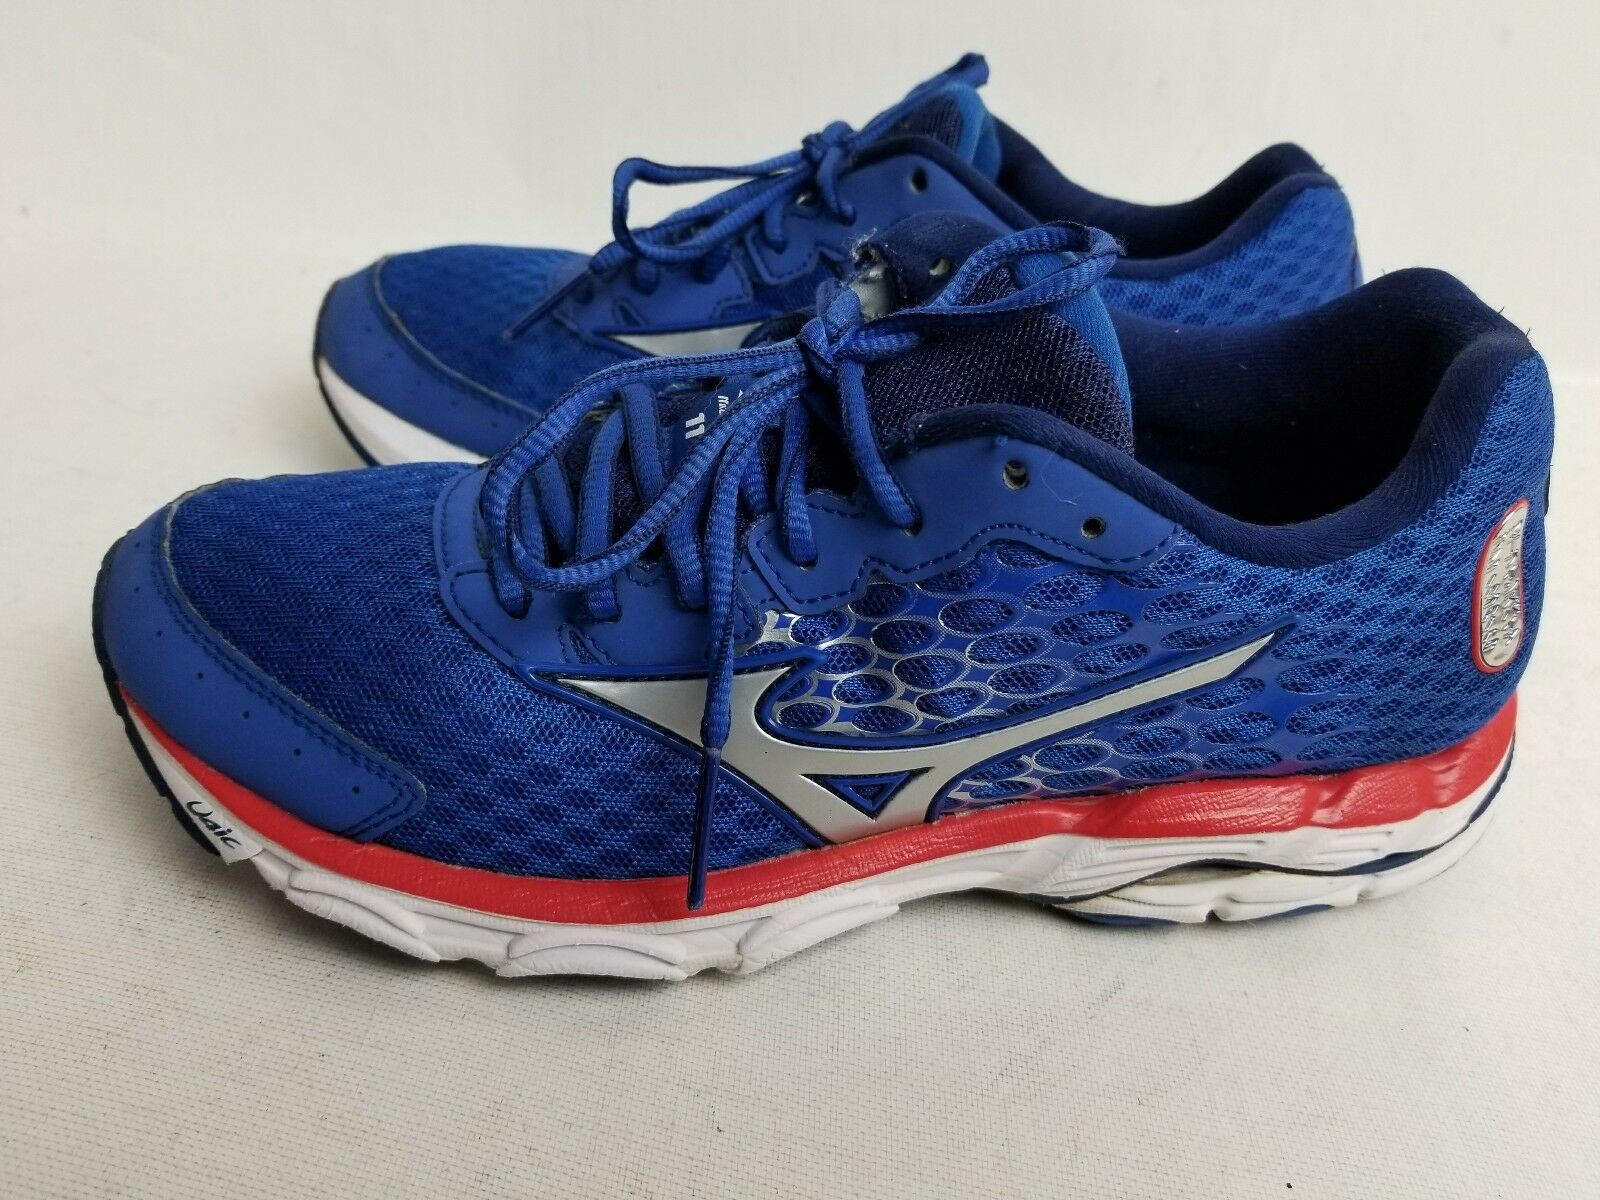 Mizuno Wave Inspire11 Men's Walking Running shoes, bluee Size 7 US